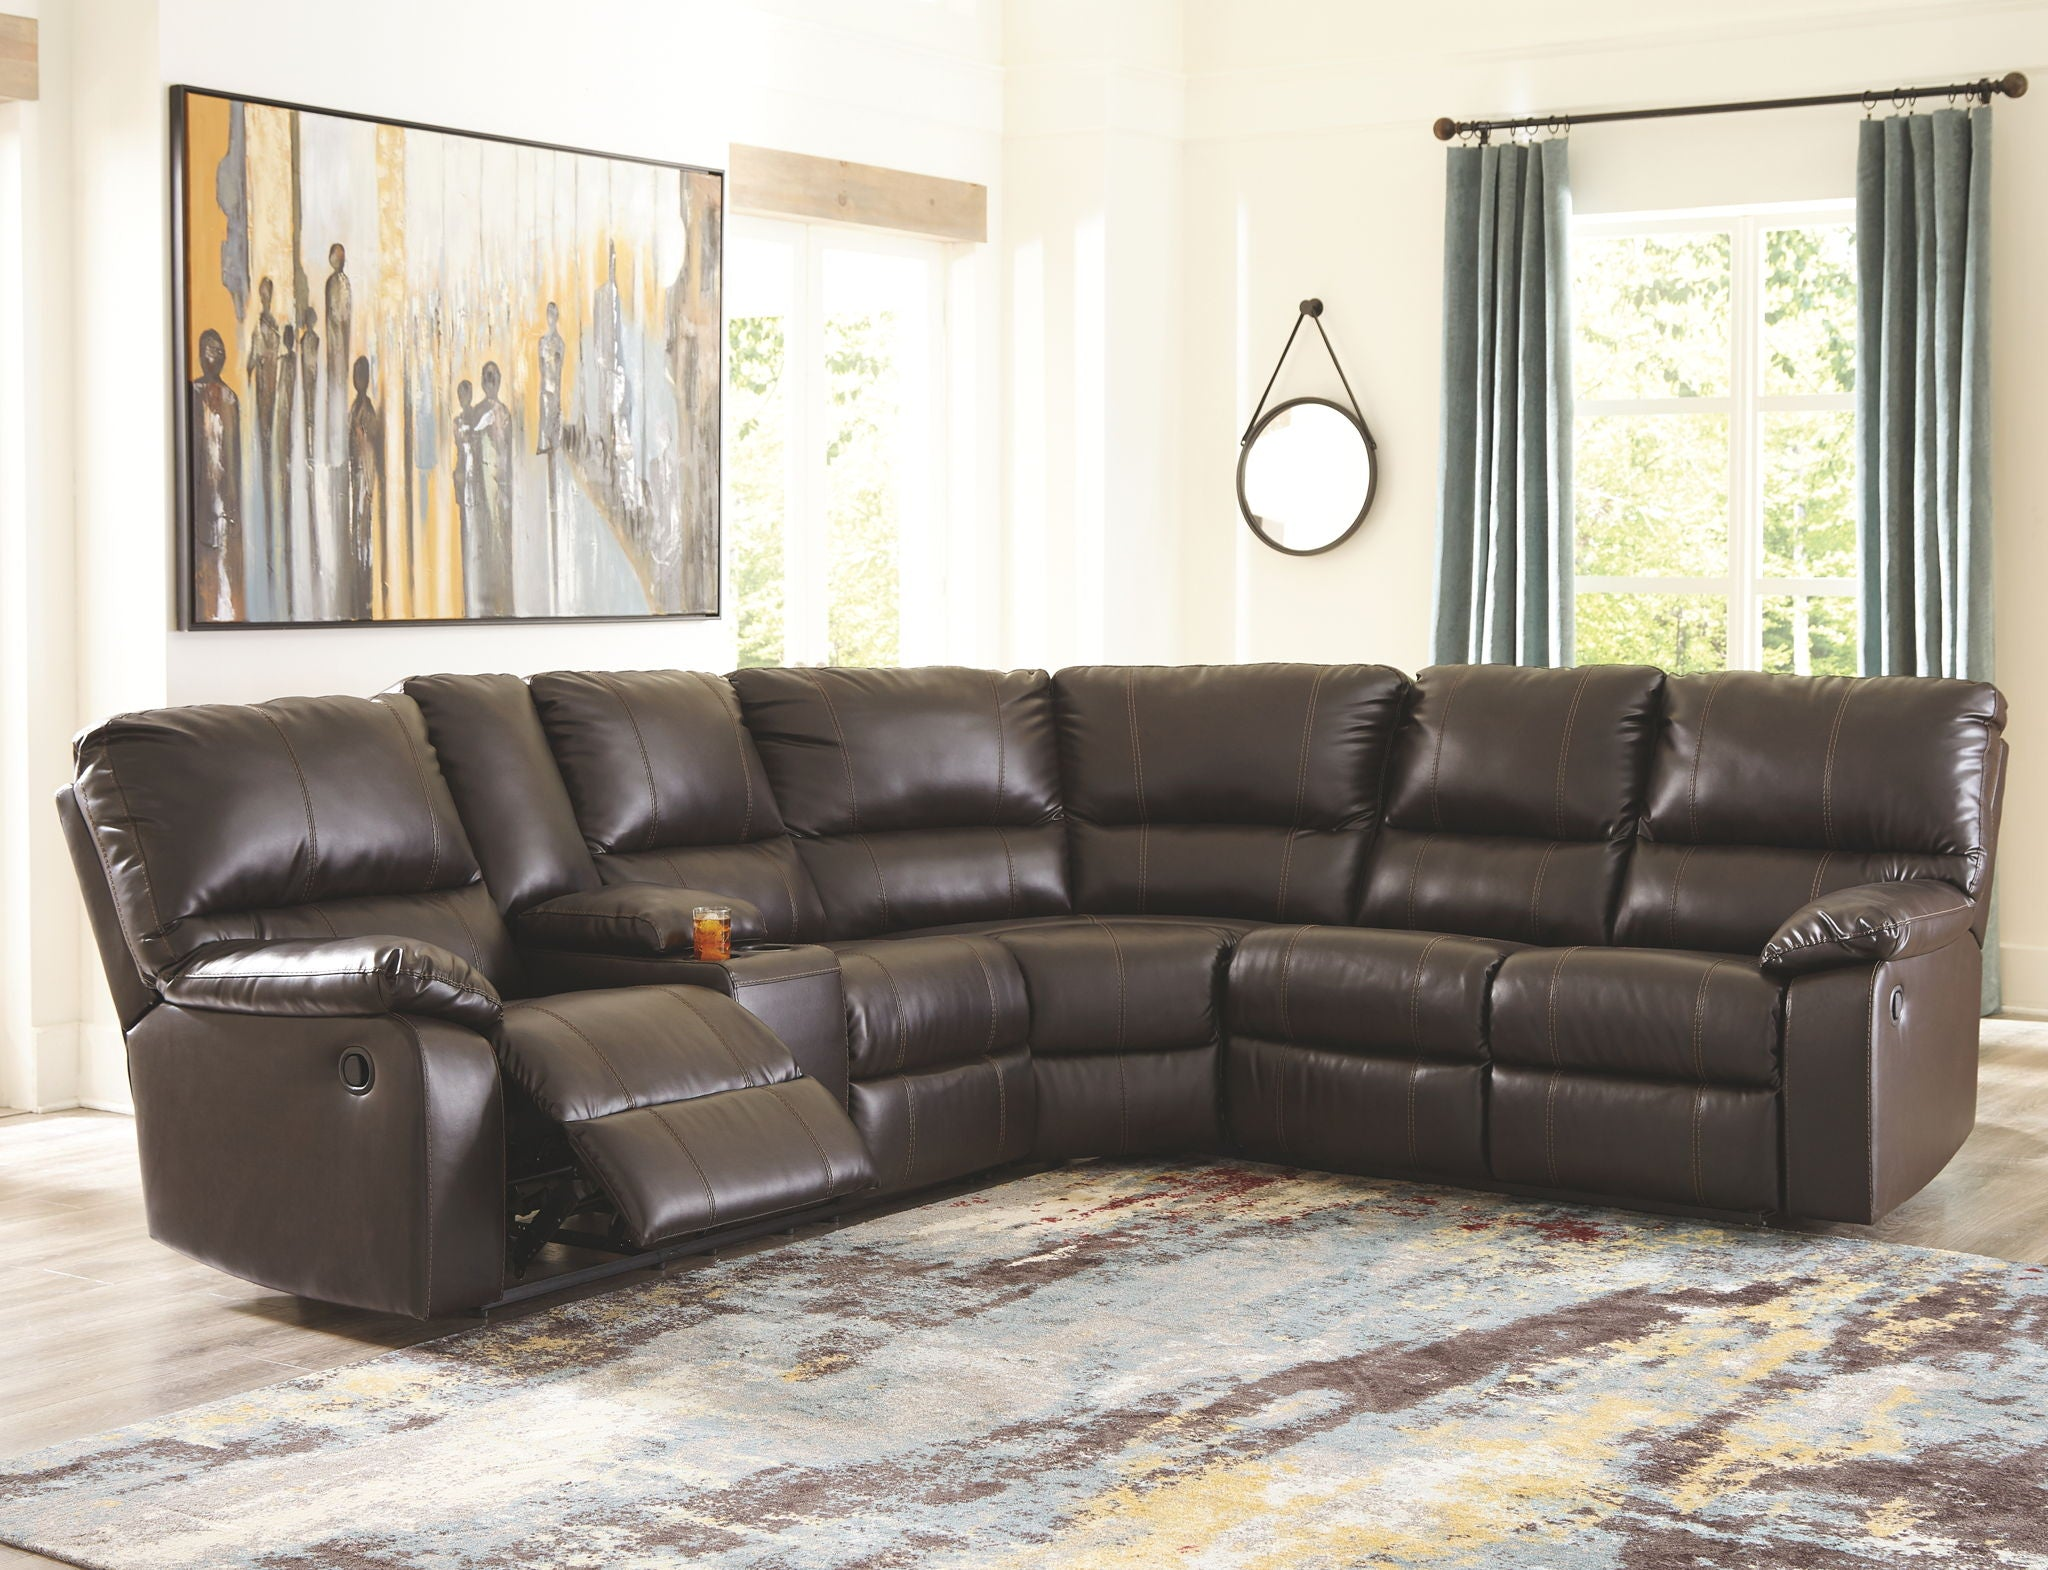 Warstein Reclining Sectional | Calgary's Furniture Store